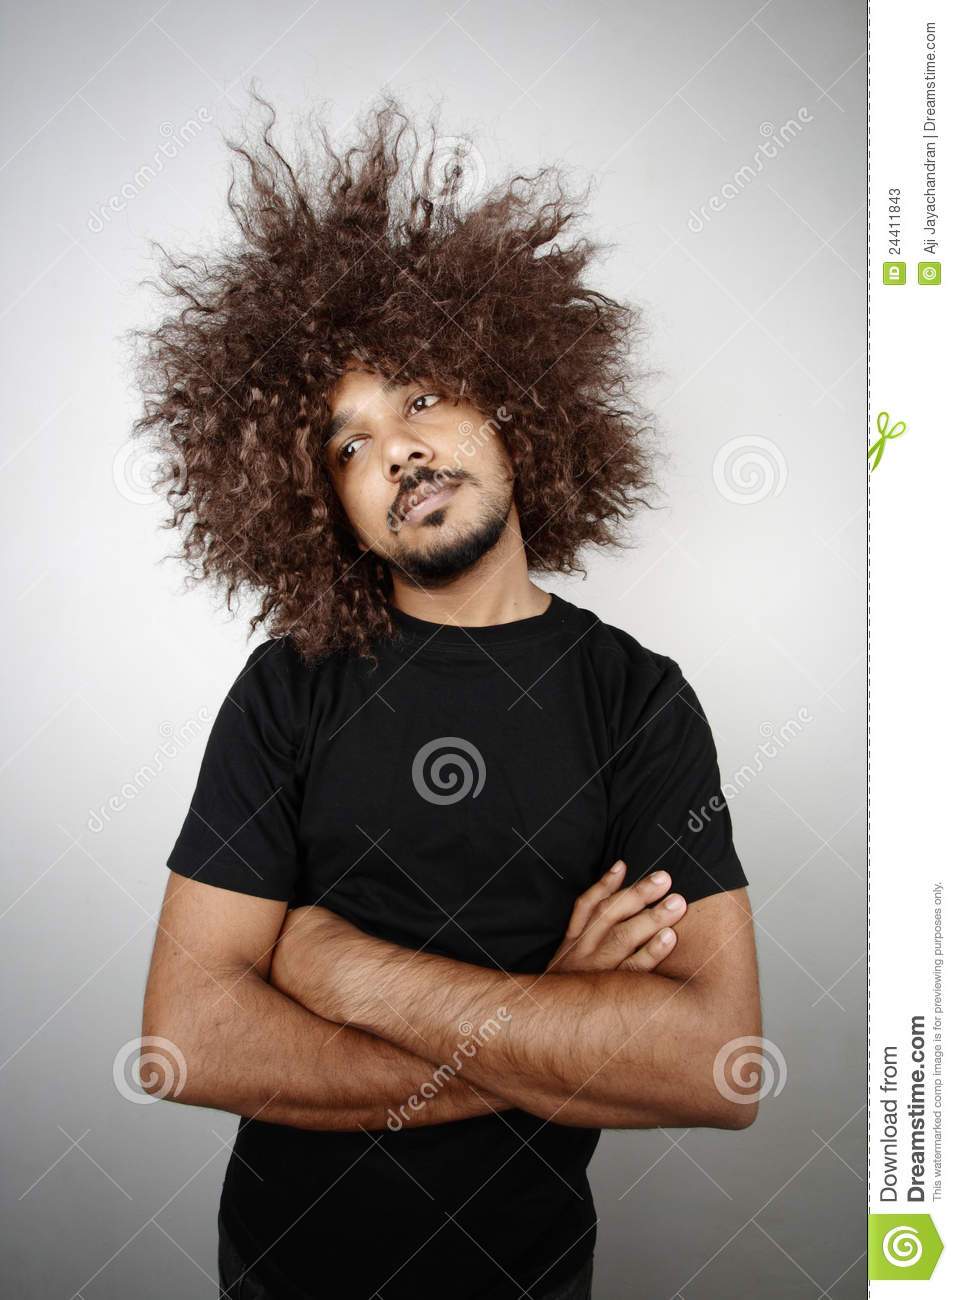 Funky Hairstyle Man Stock Image Image Of Hair Lazy